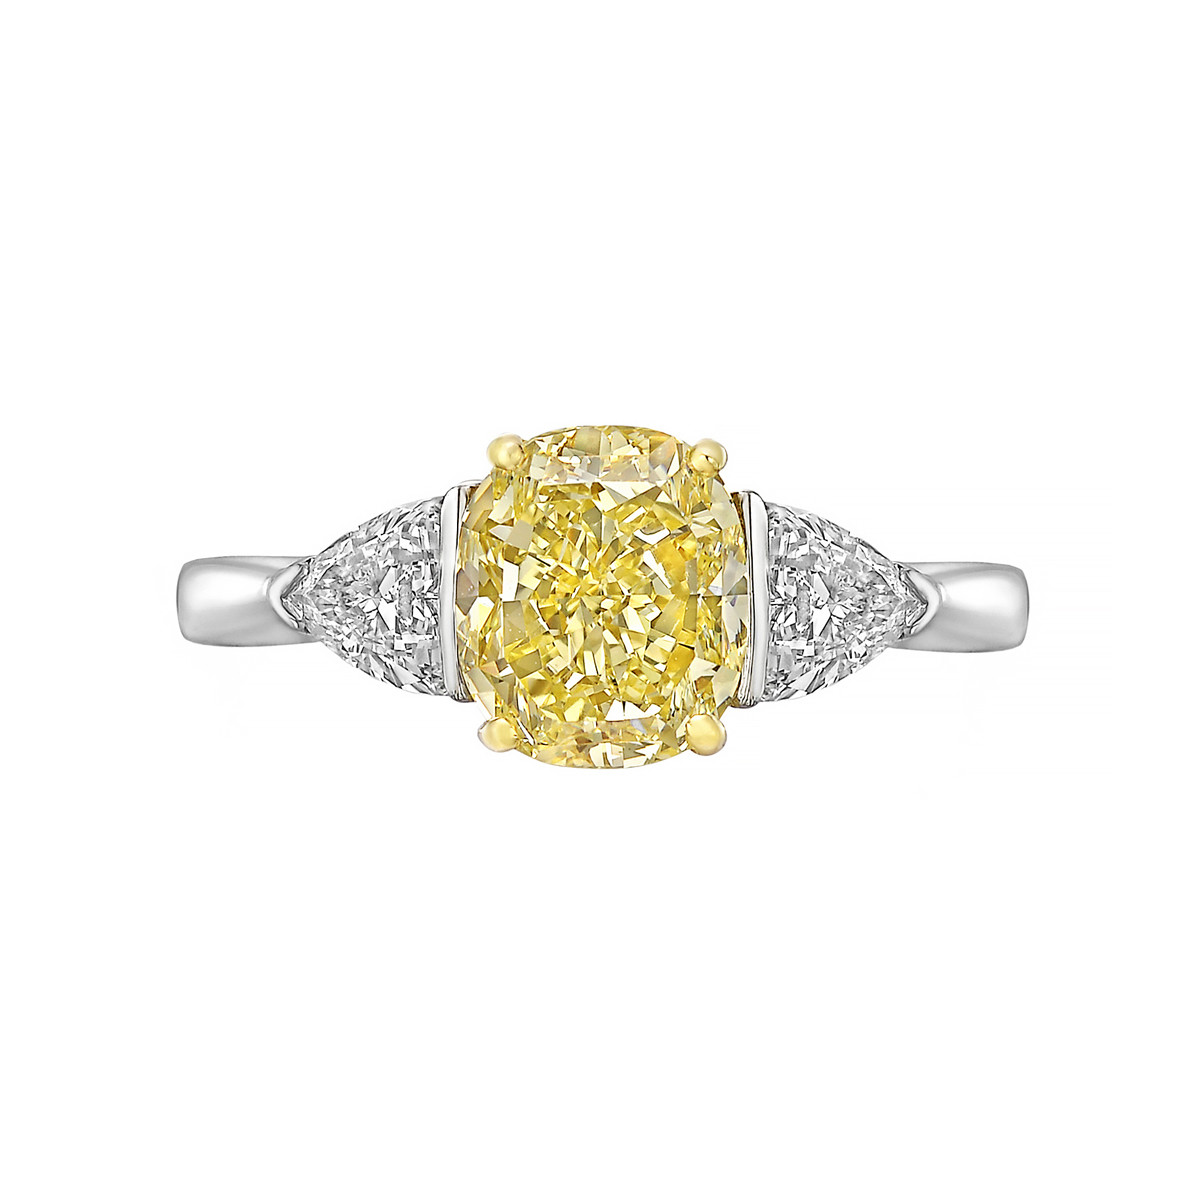 2.12ct Fancy Yellow Diamond Ring